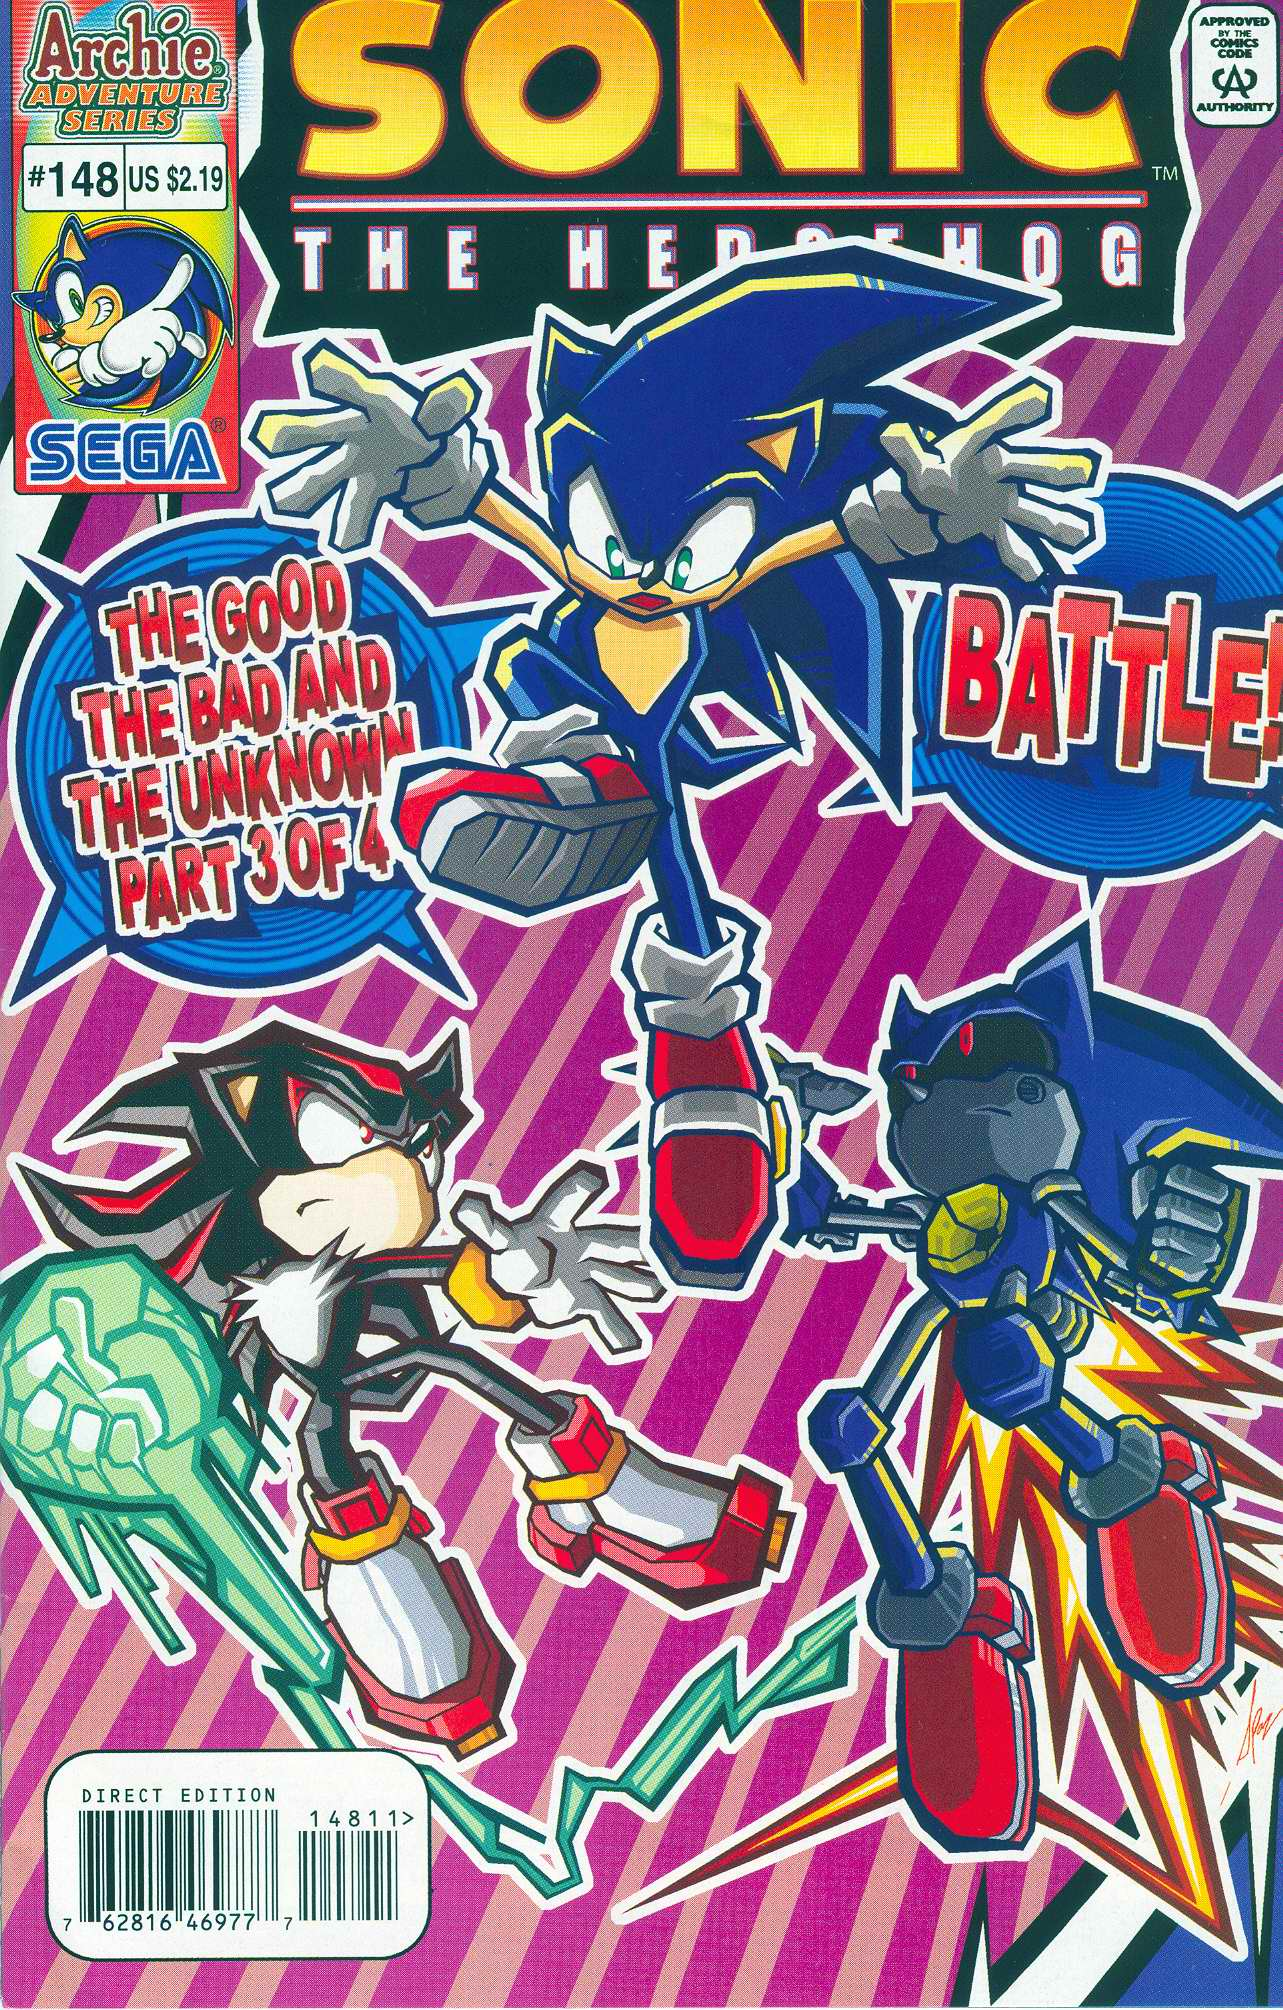 Sonic - Archie Adventure Series June 2005 Comic cover page